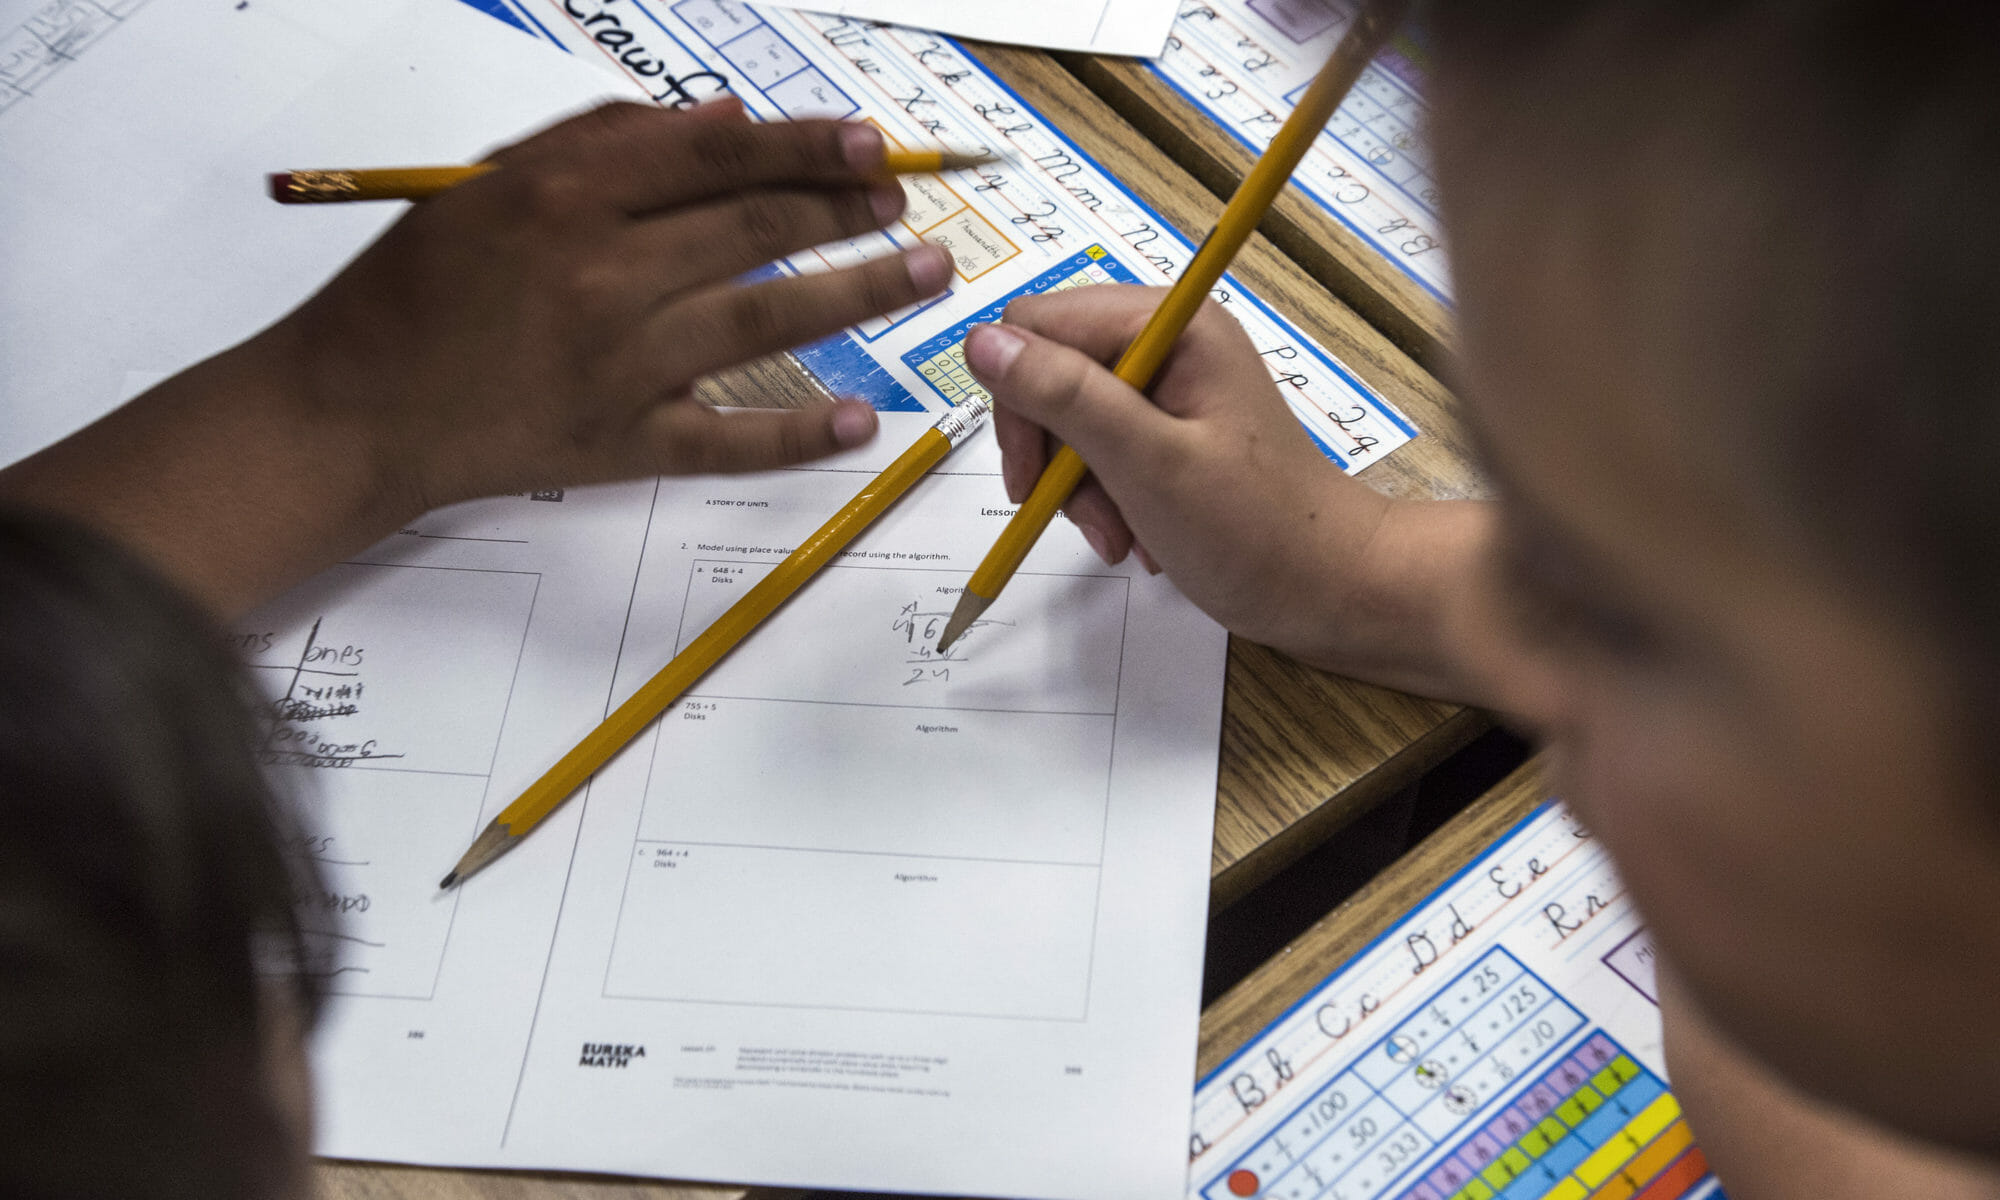 A student working on classwork at Pat Diskin Elementary School